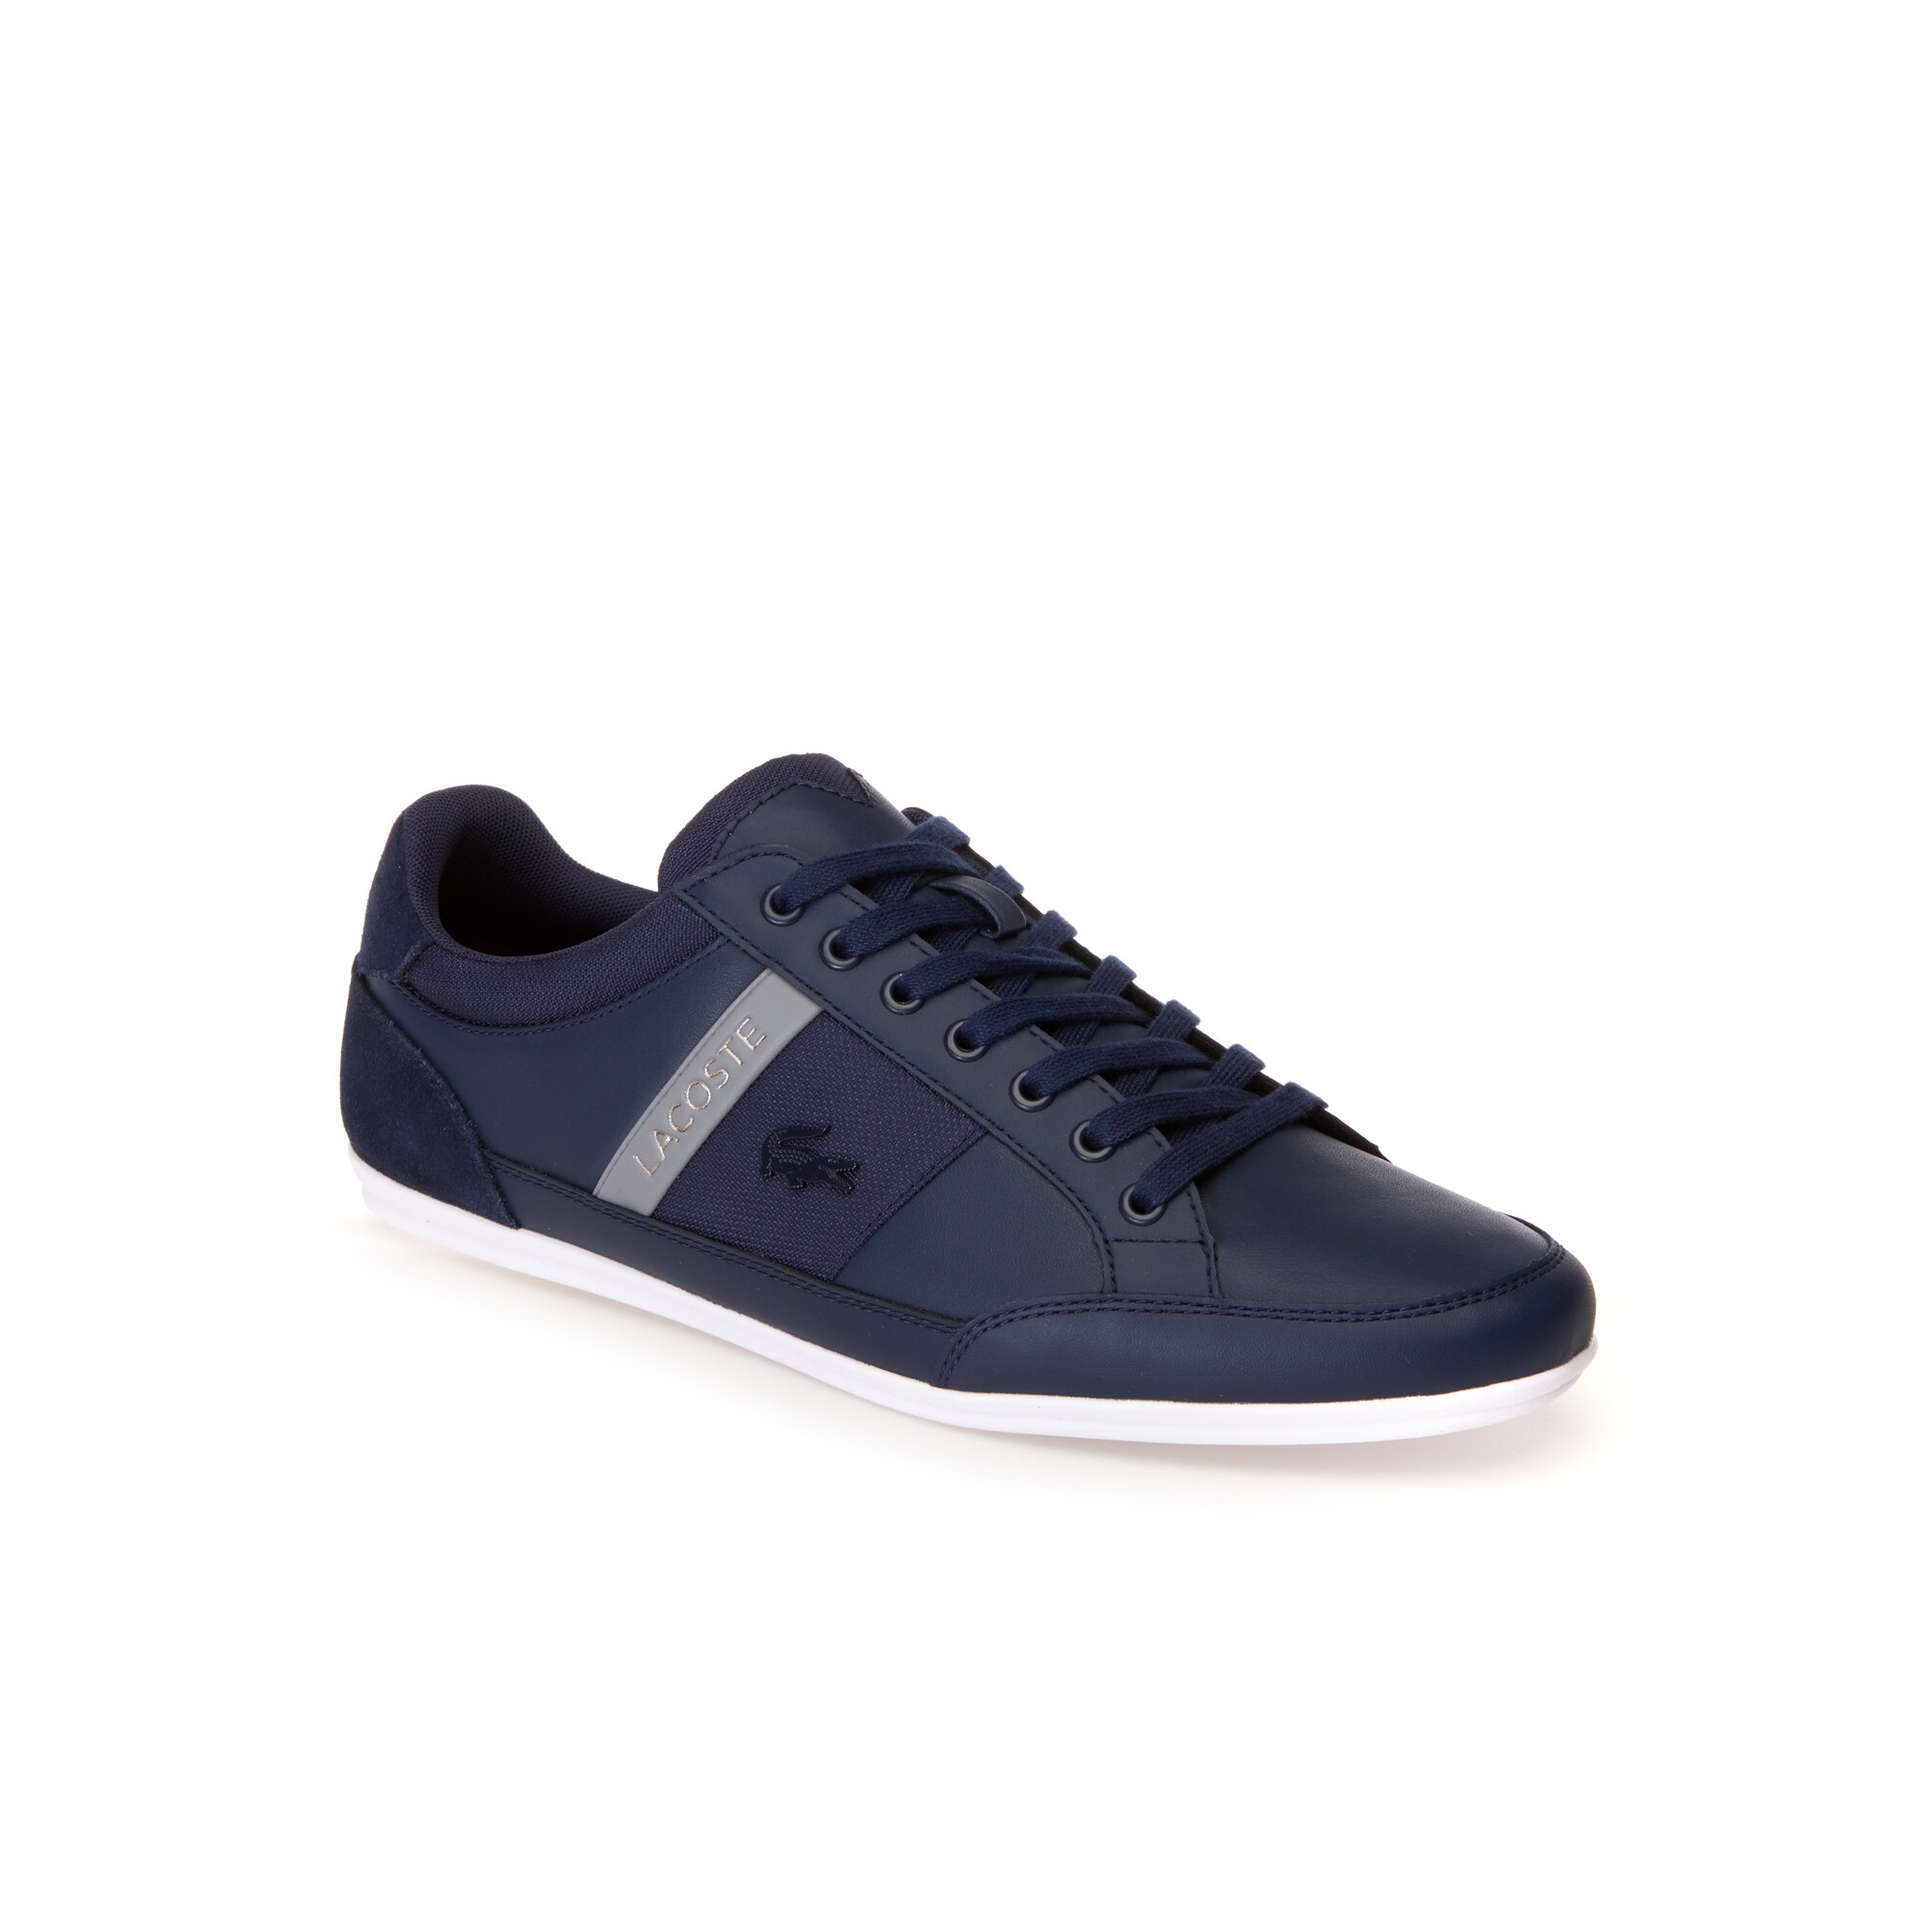 Men's Chaymon Tonal Nappa Leather and Suede Trainers